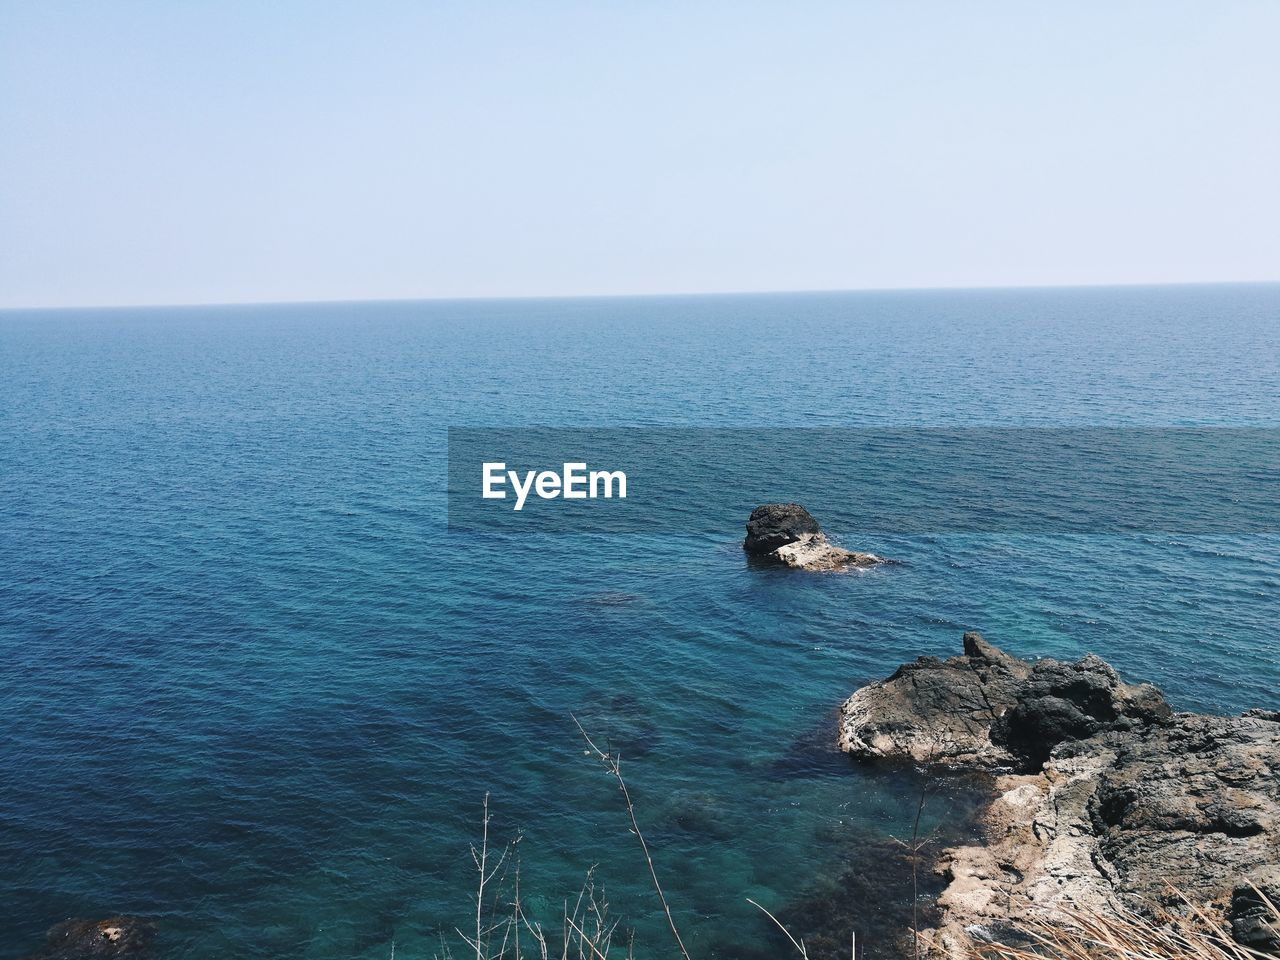 sea, horizon over water, water, nature, scenics, high angle view, tranquil scene, tranquility, beauty in nature, no people, day, clear sky, outdoors, sky, mammal